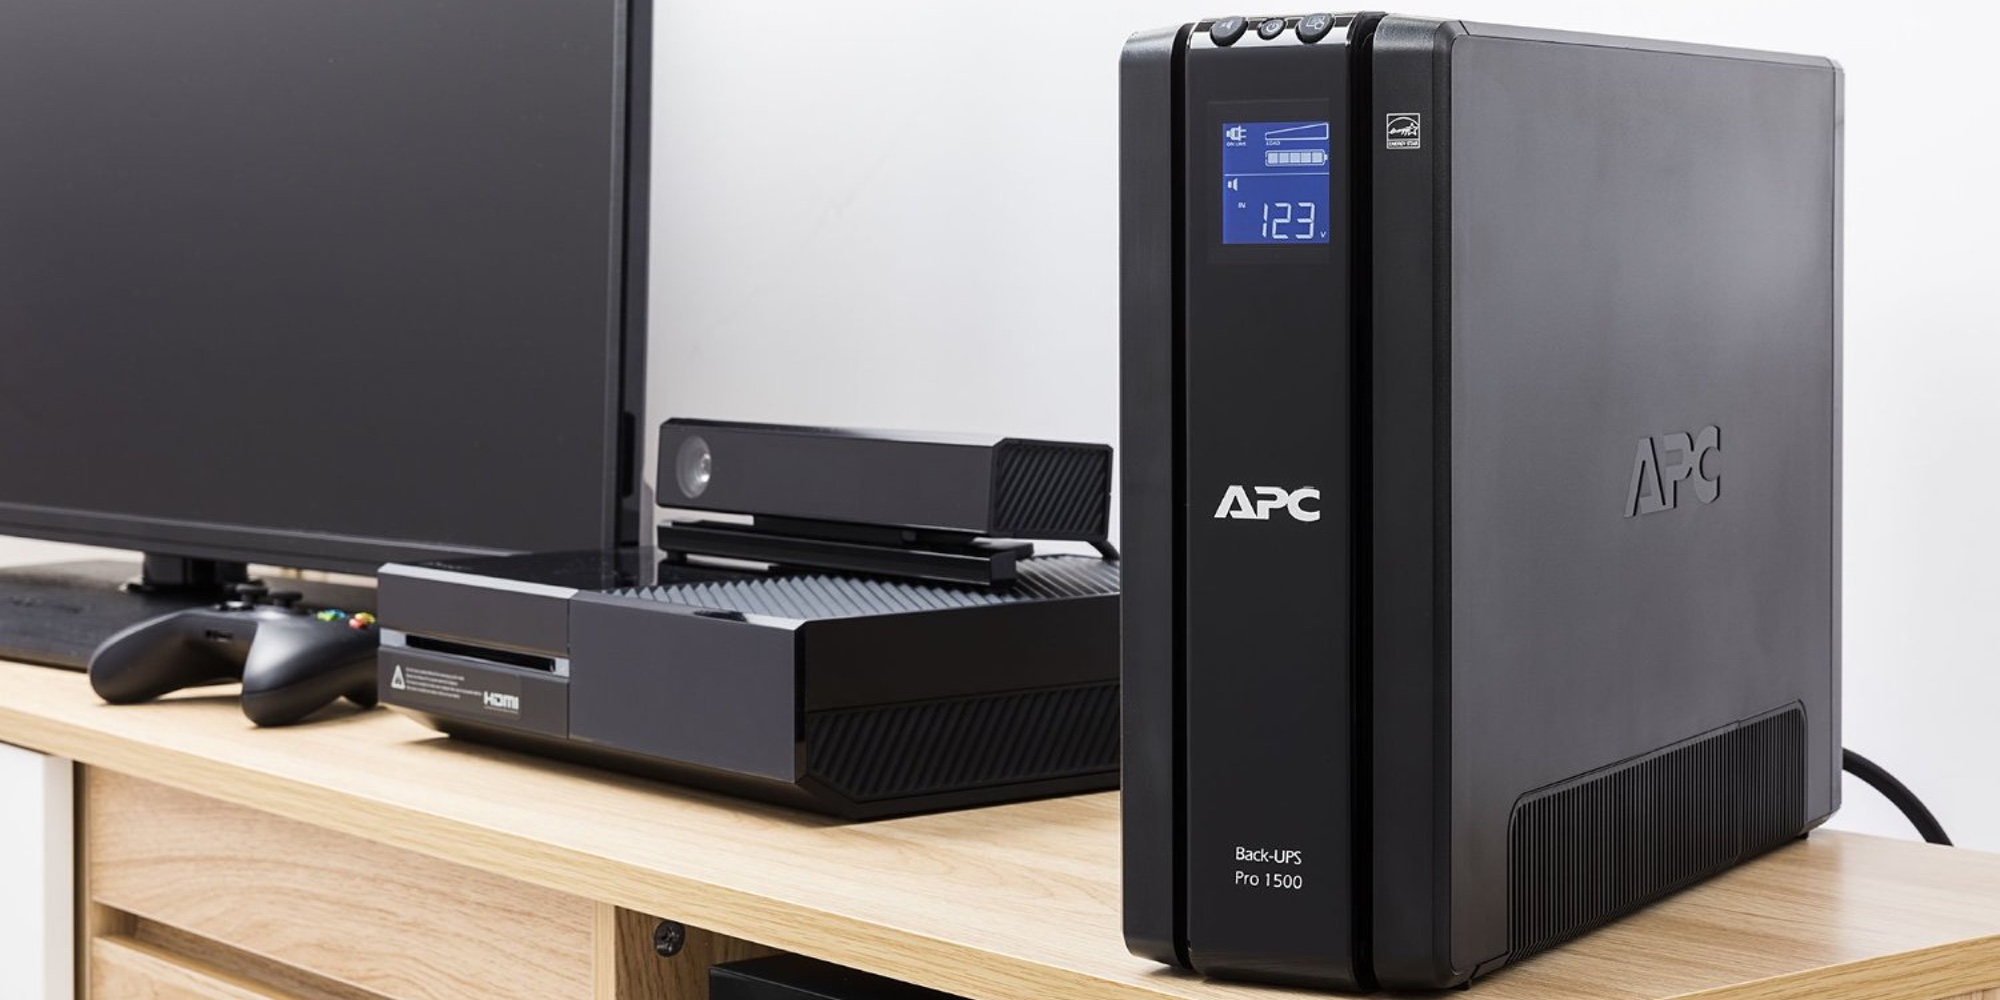 APC Back-UPS Pro 10-outlet Battery Backup and Surge Protector $120 shipped (Reg. $150+) - 9to5Toys